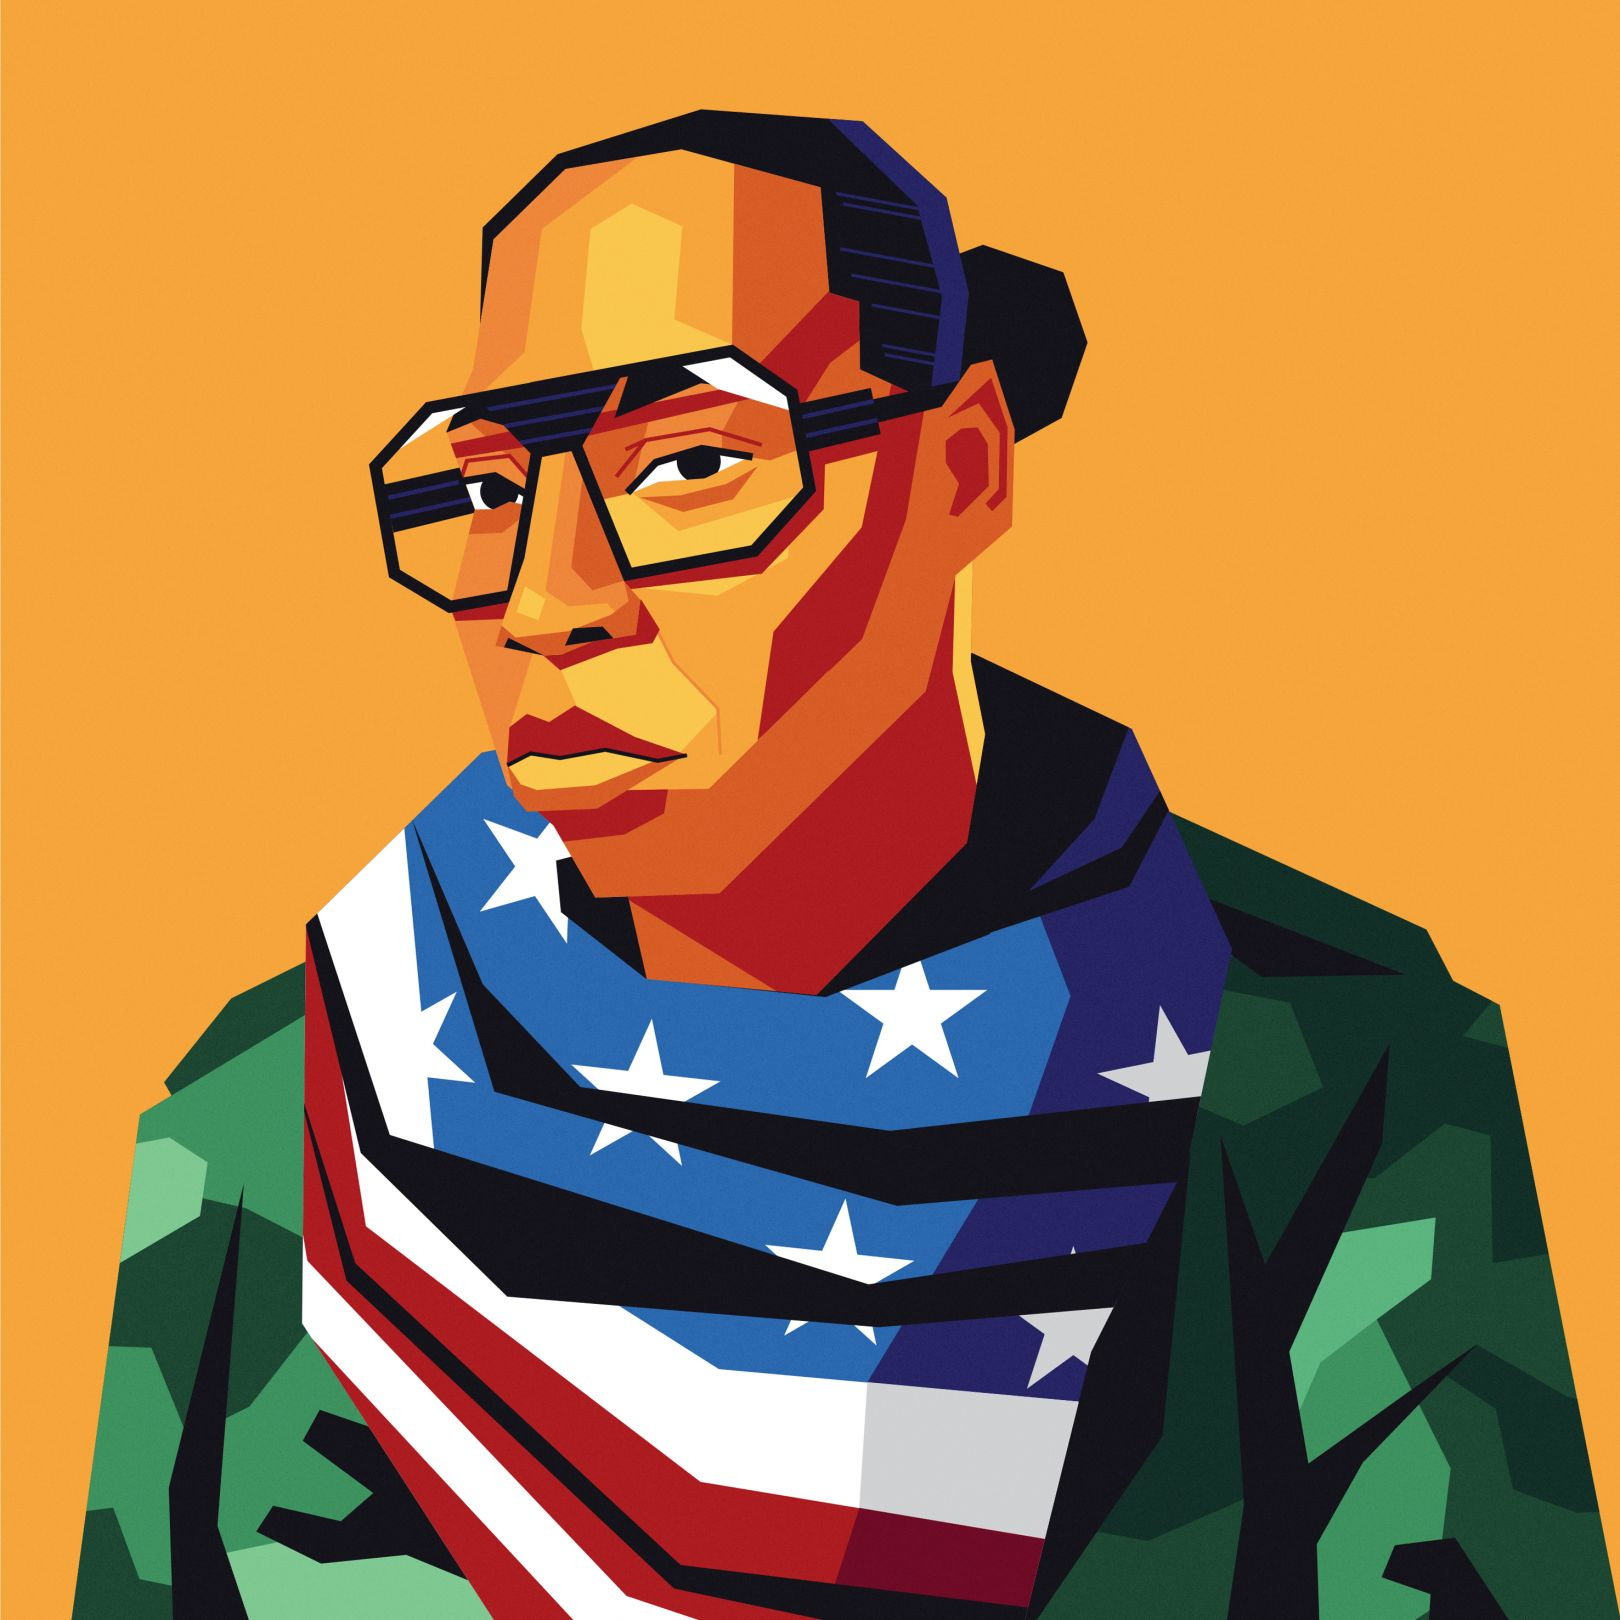 Illustrations Inspired by Hip Hop Culture by Dale Edwin Murray